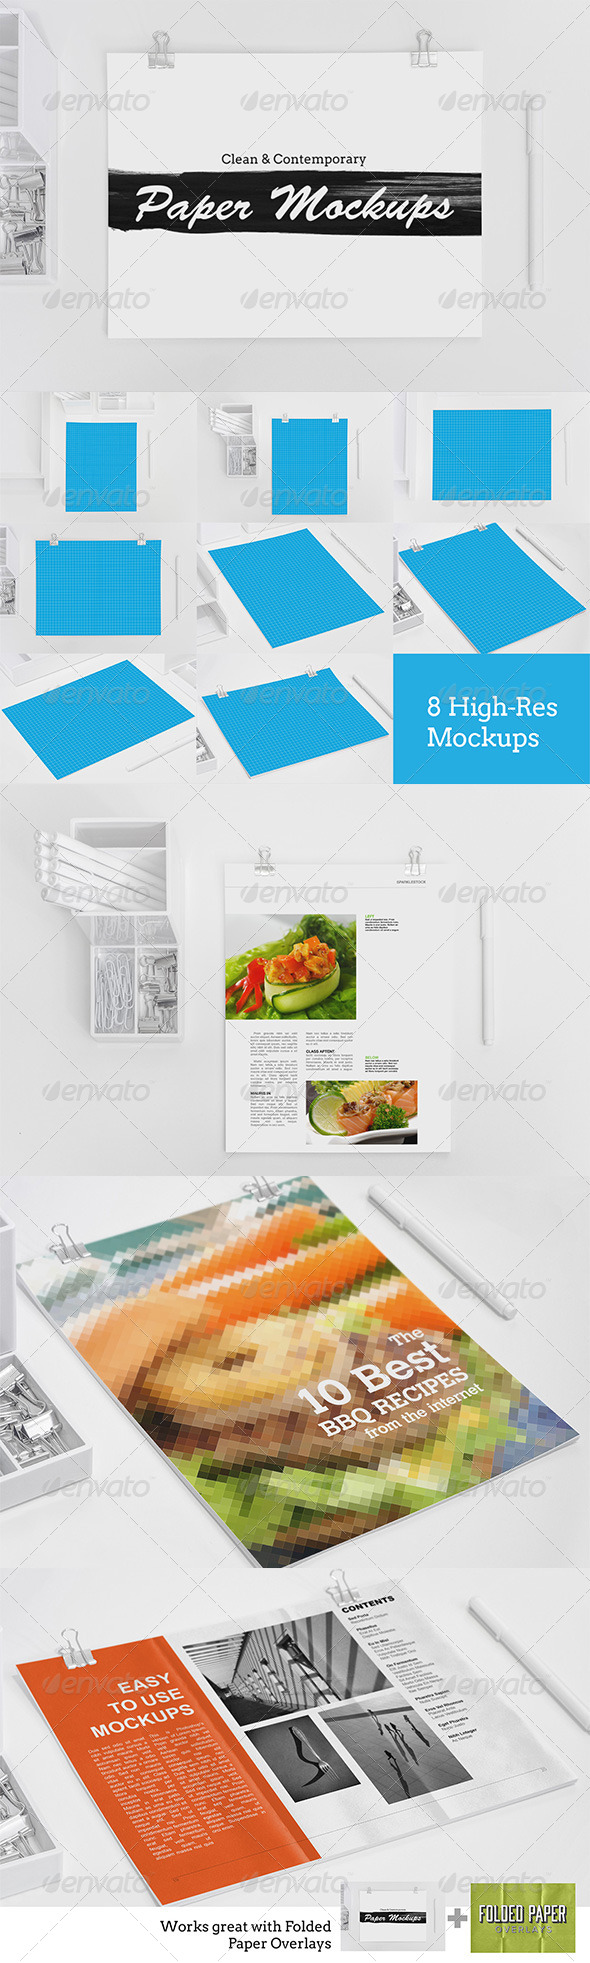 8 Clean & Contemporary Paper Mockups - Print Product Mock-Ups